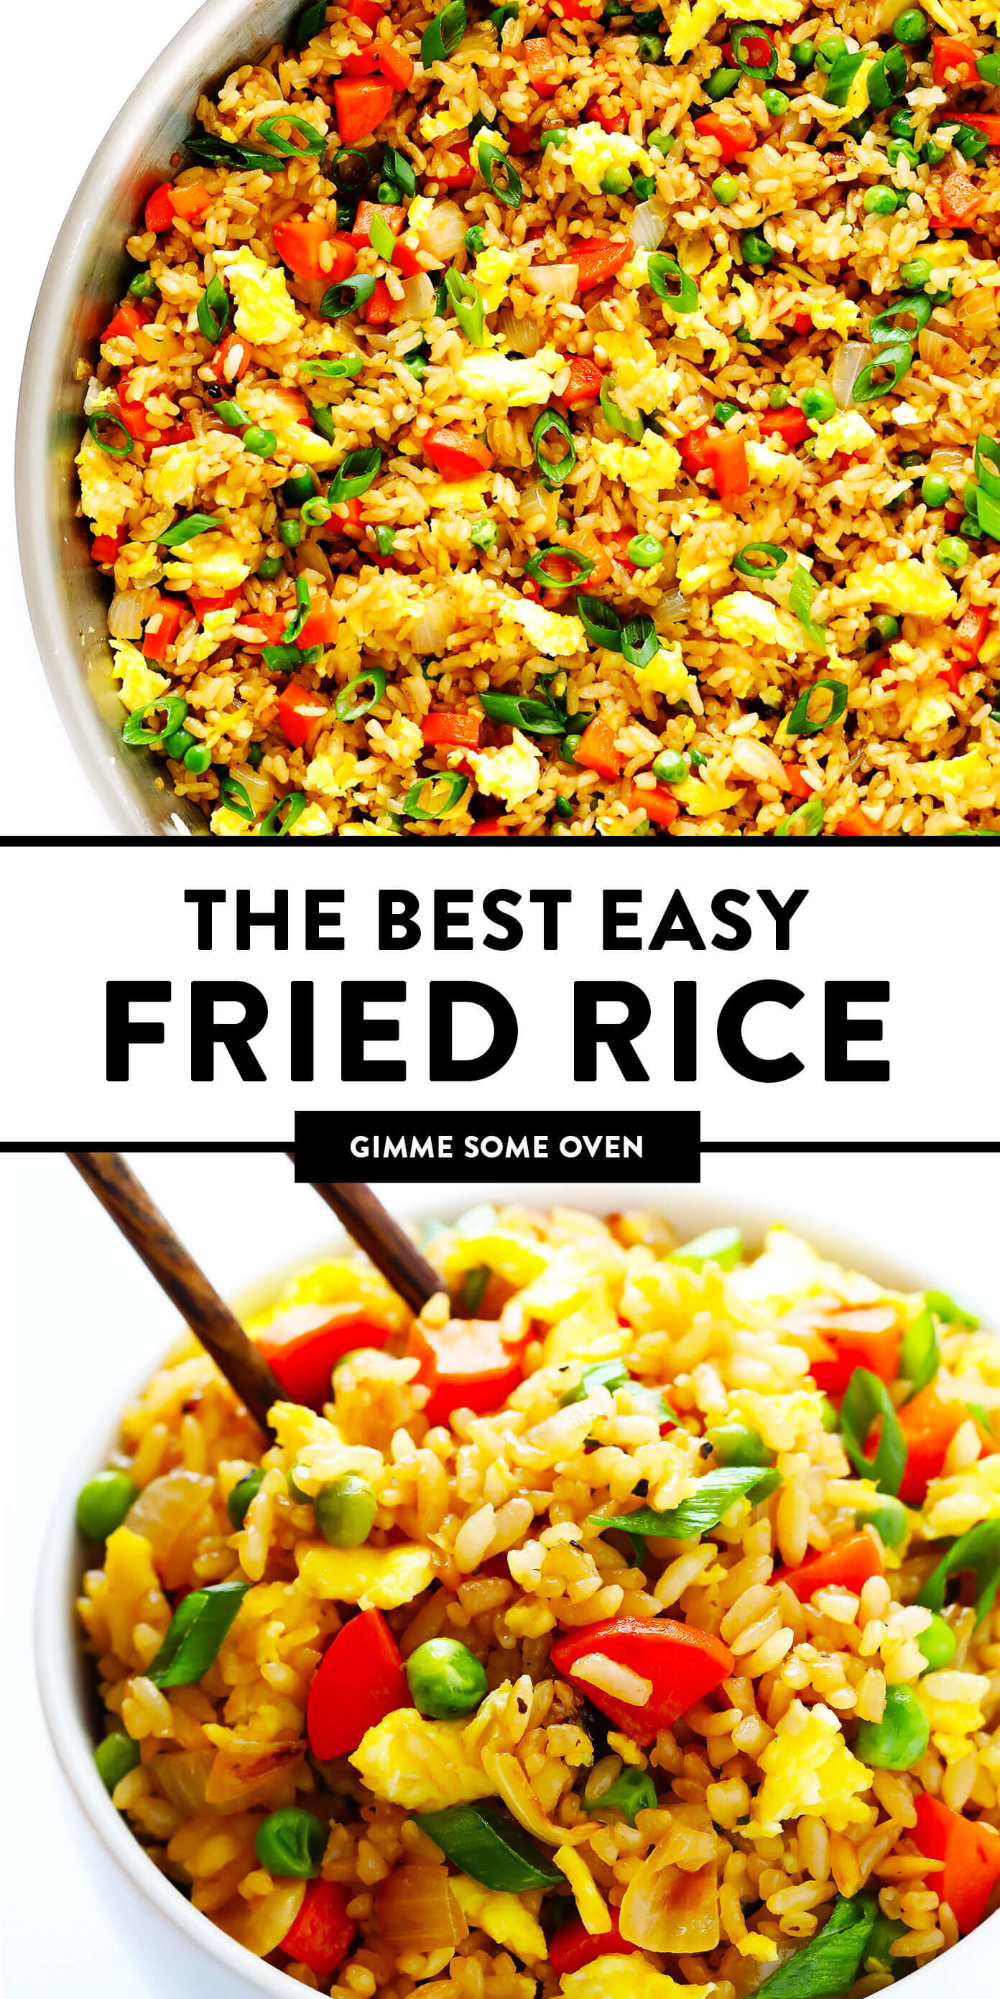 The Best Fried Rice Gimme Some Oven Recipe In 2021 Homemade Fried Rice Recipes Fried Rice